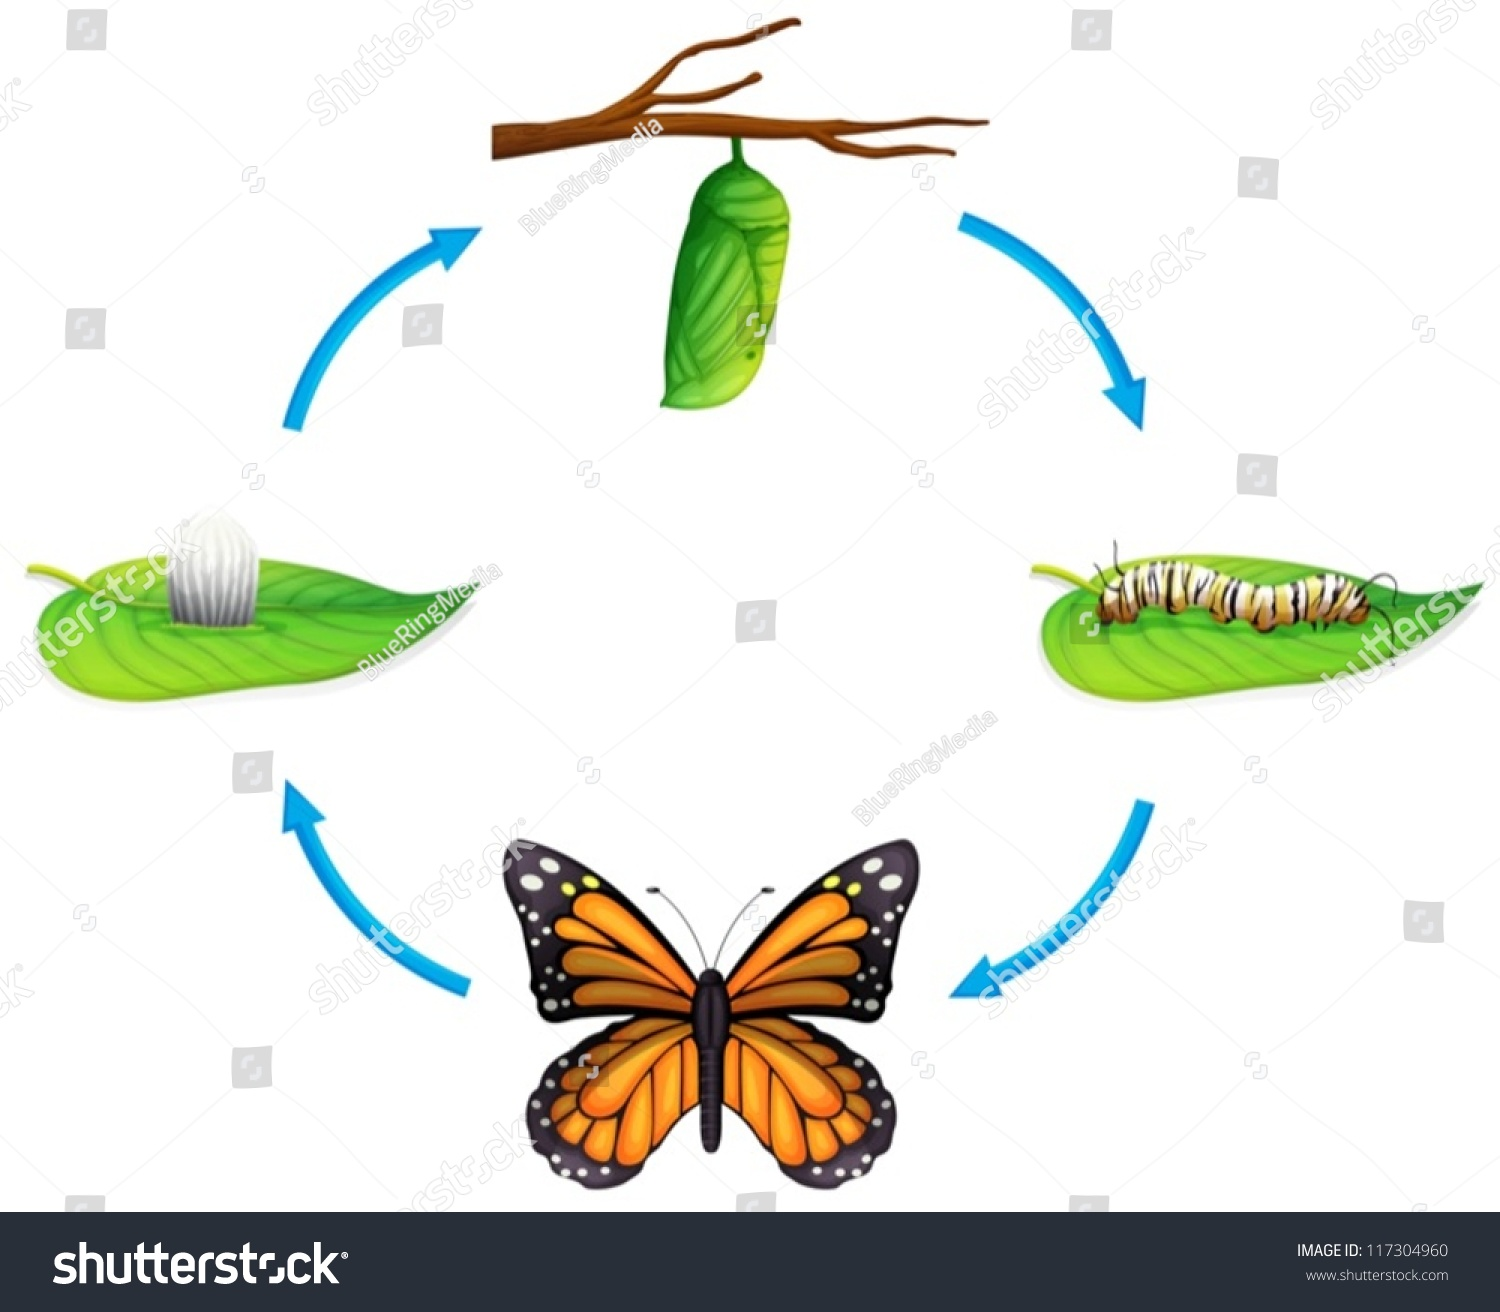 Illustration Of The Life Cycle Of A Danaus Plexippus On A